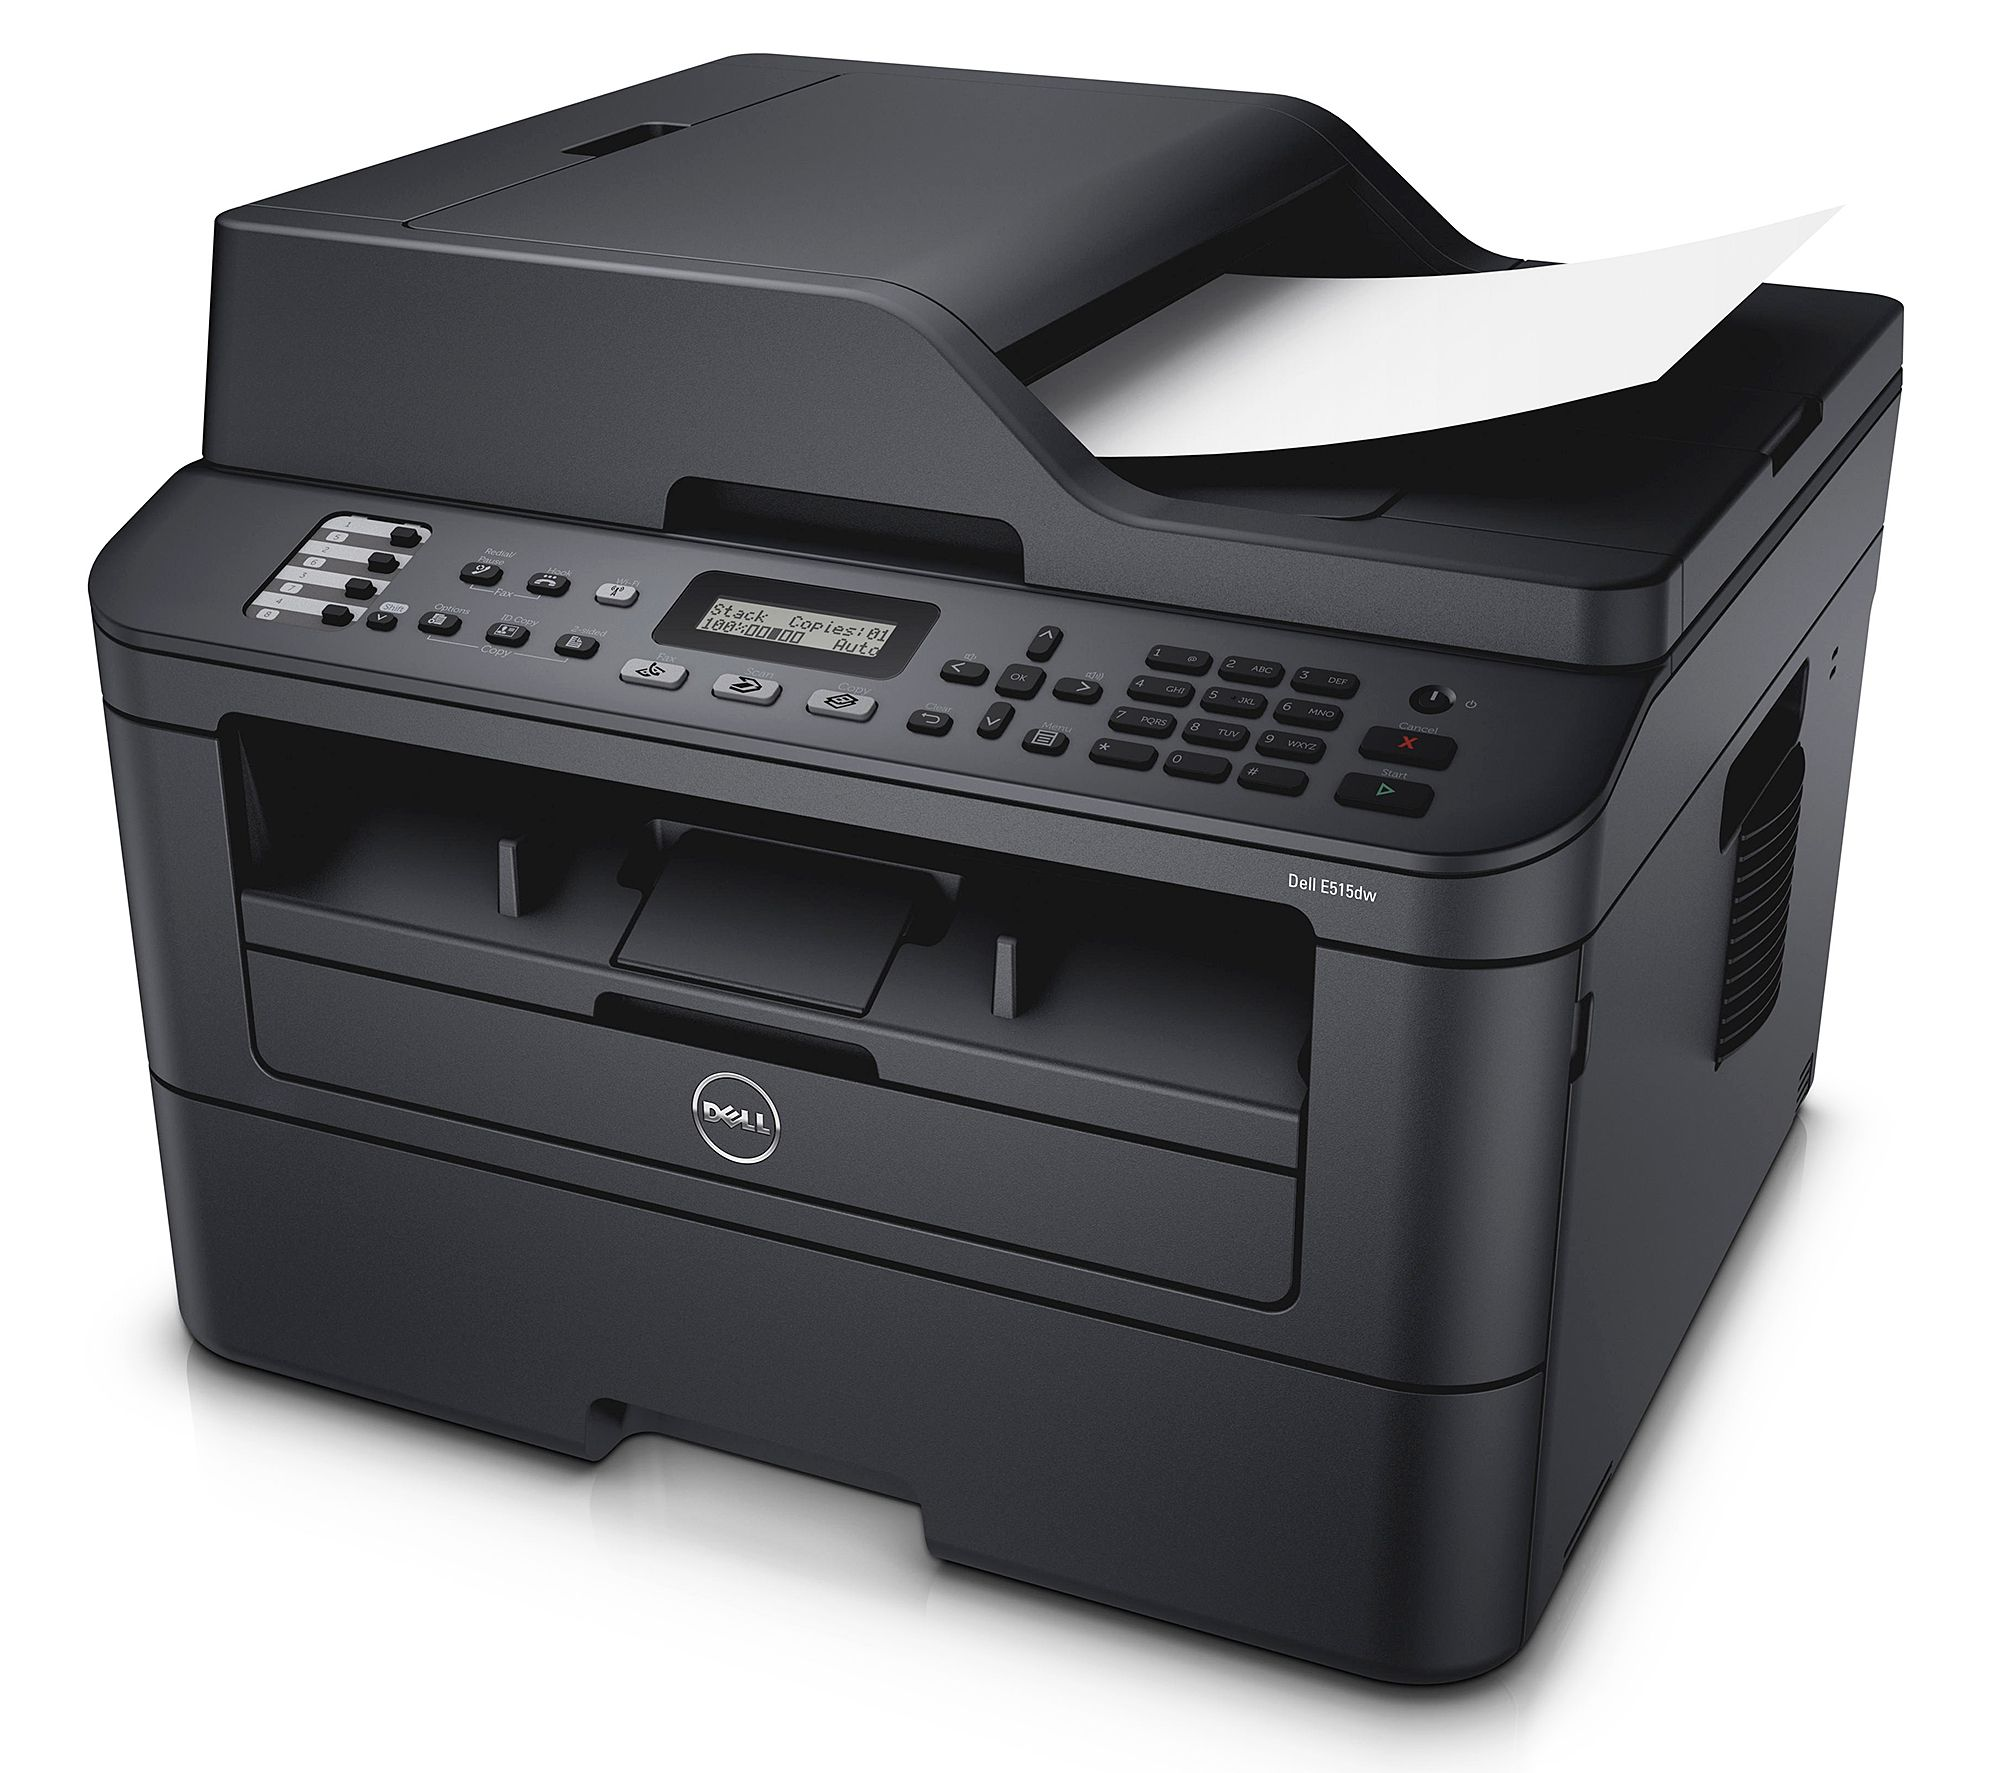 Color printing quality - Dell E515dw Multifunction Printer